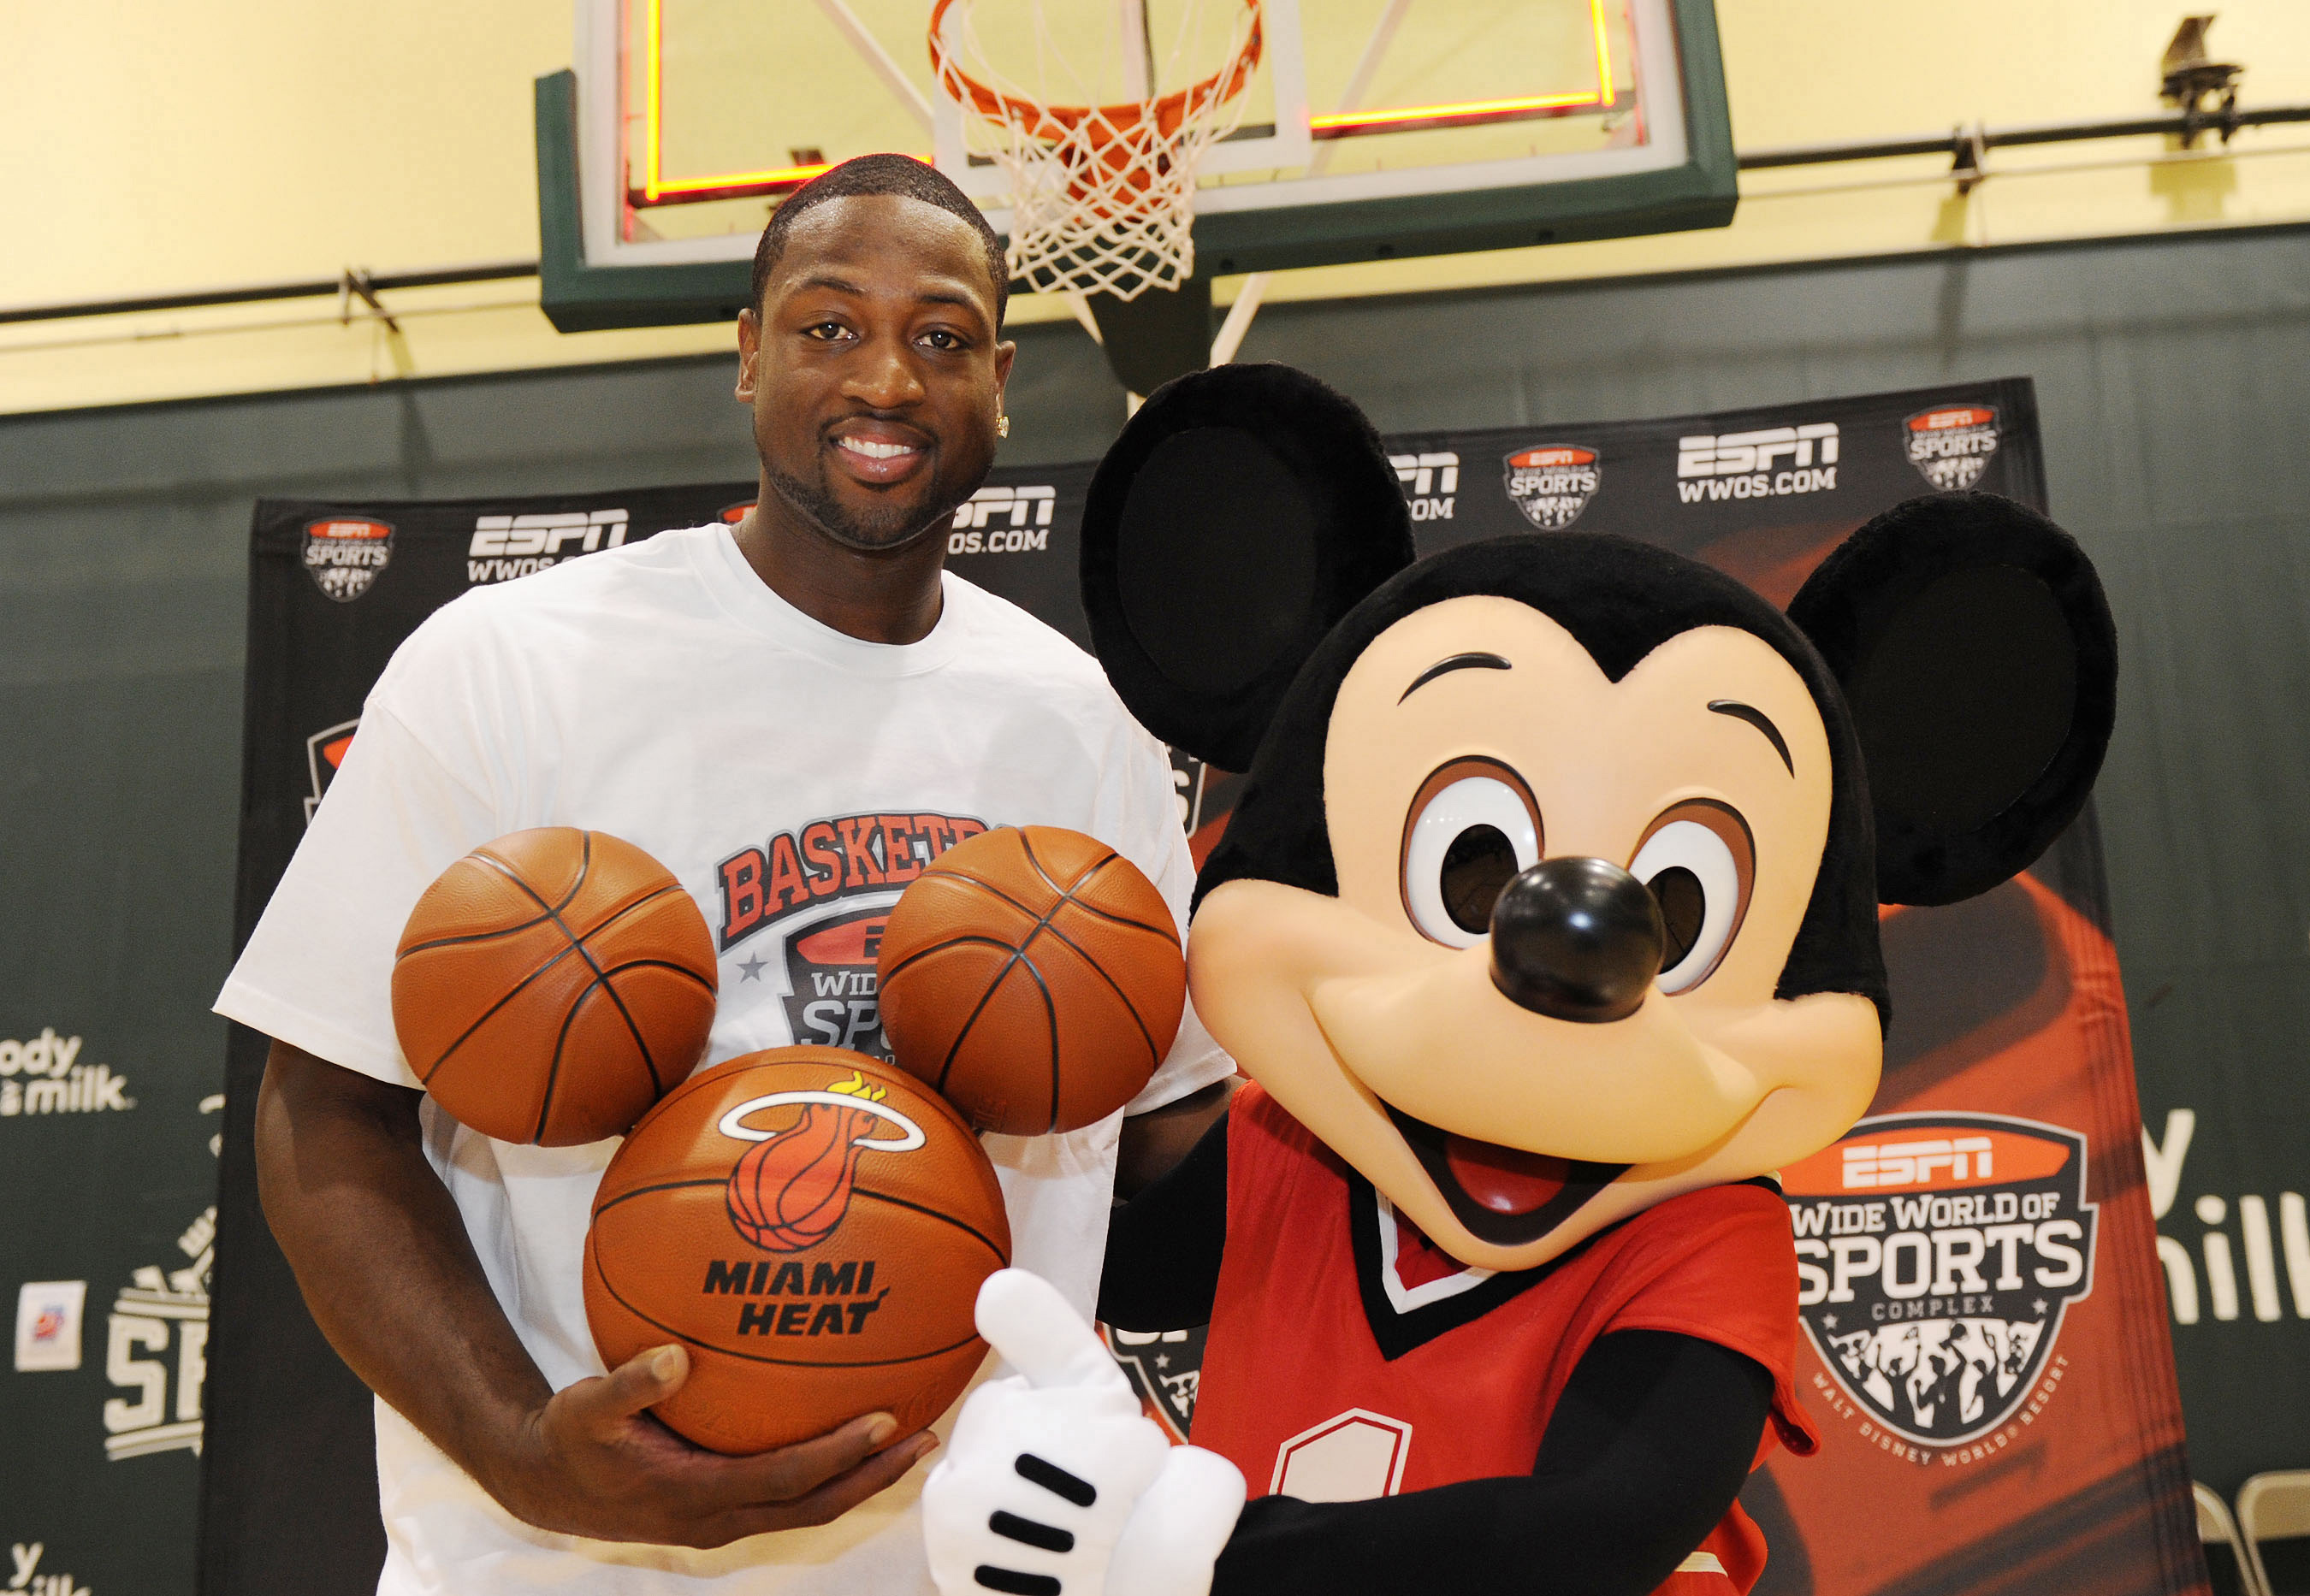 DWYANE WADE 'GOES TO DISNEY WORLD' -- JULY 11, 2010